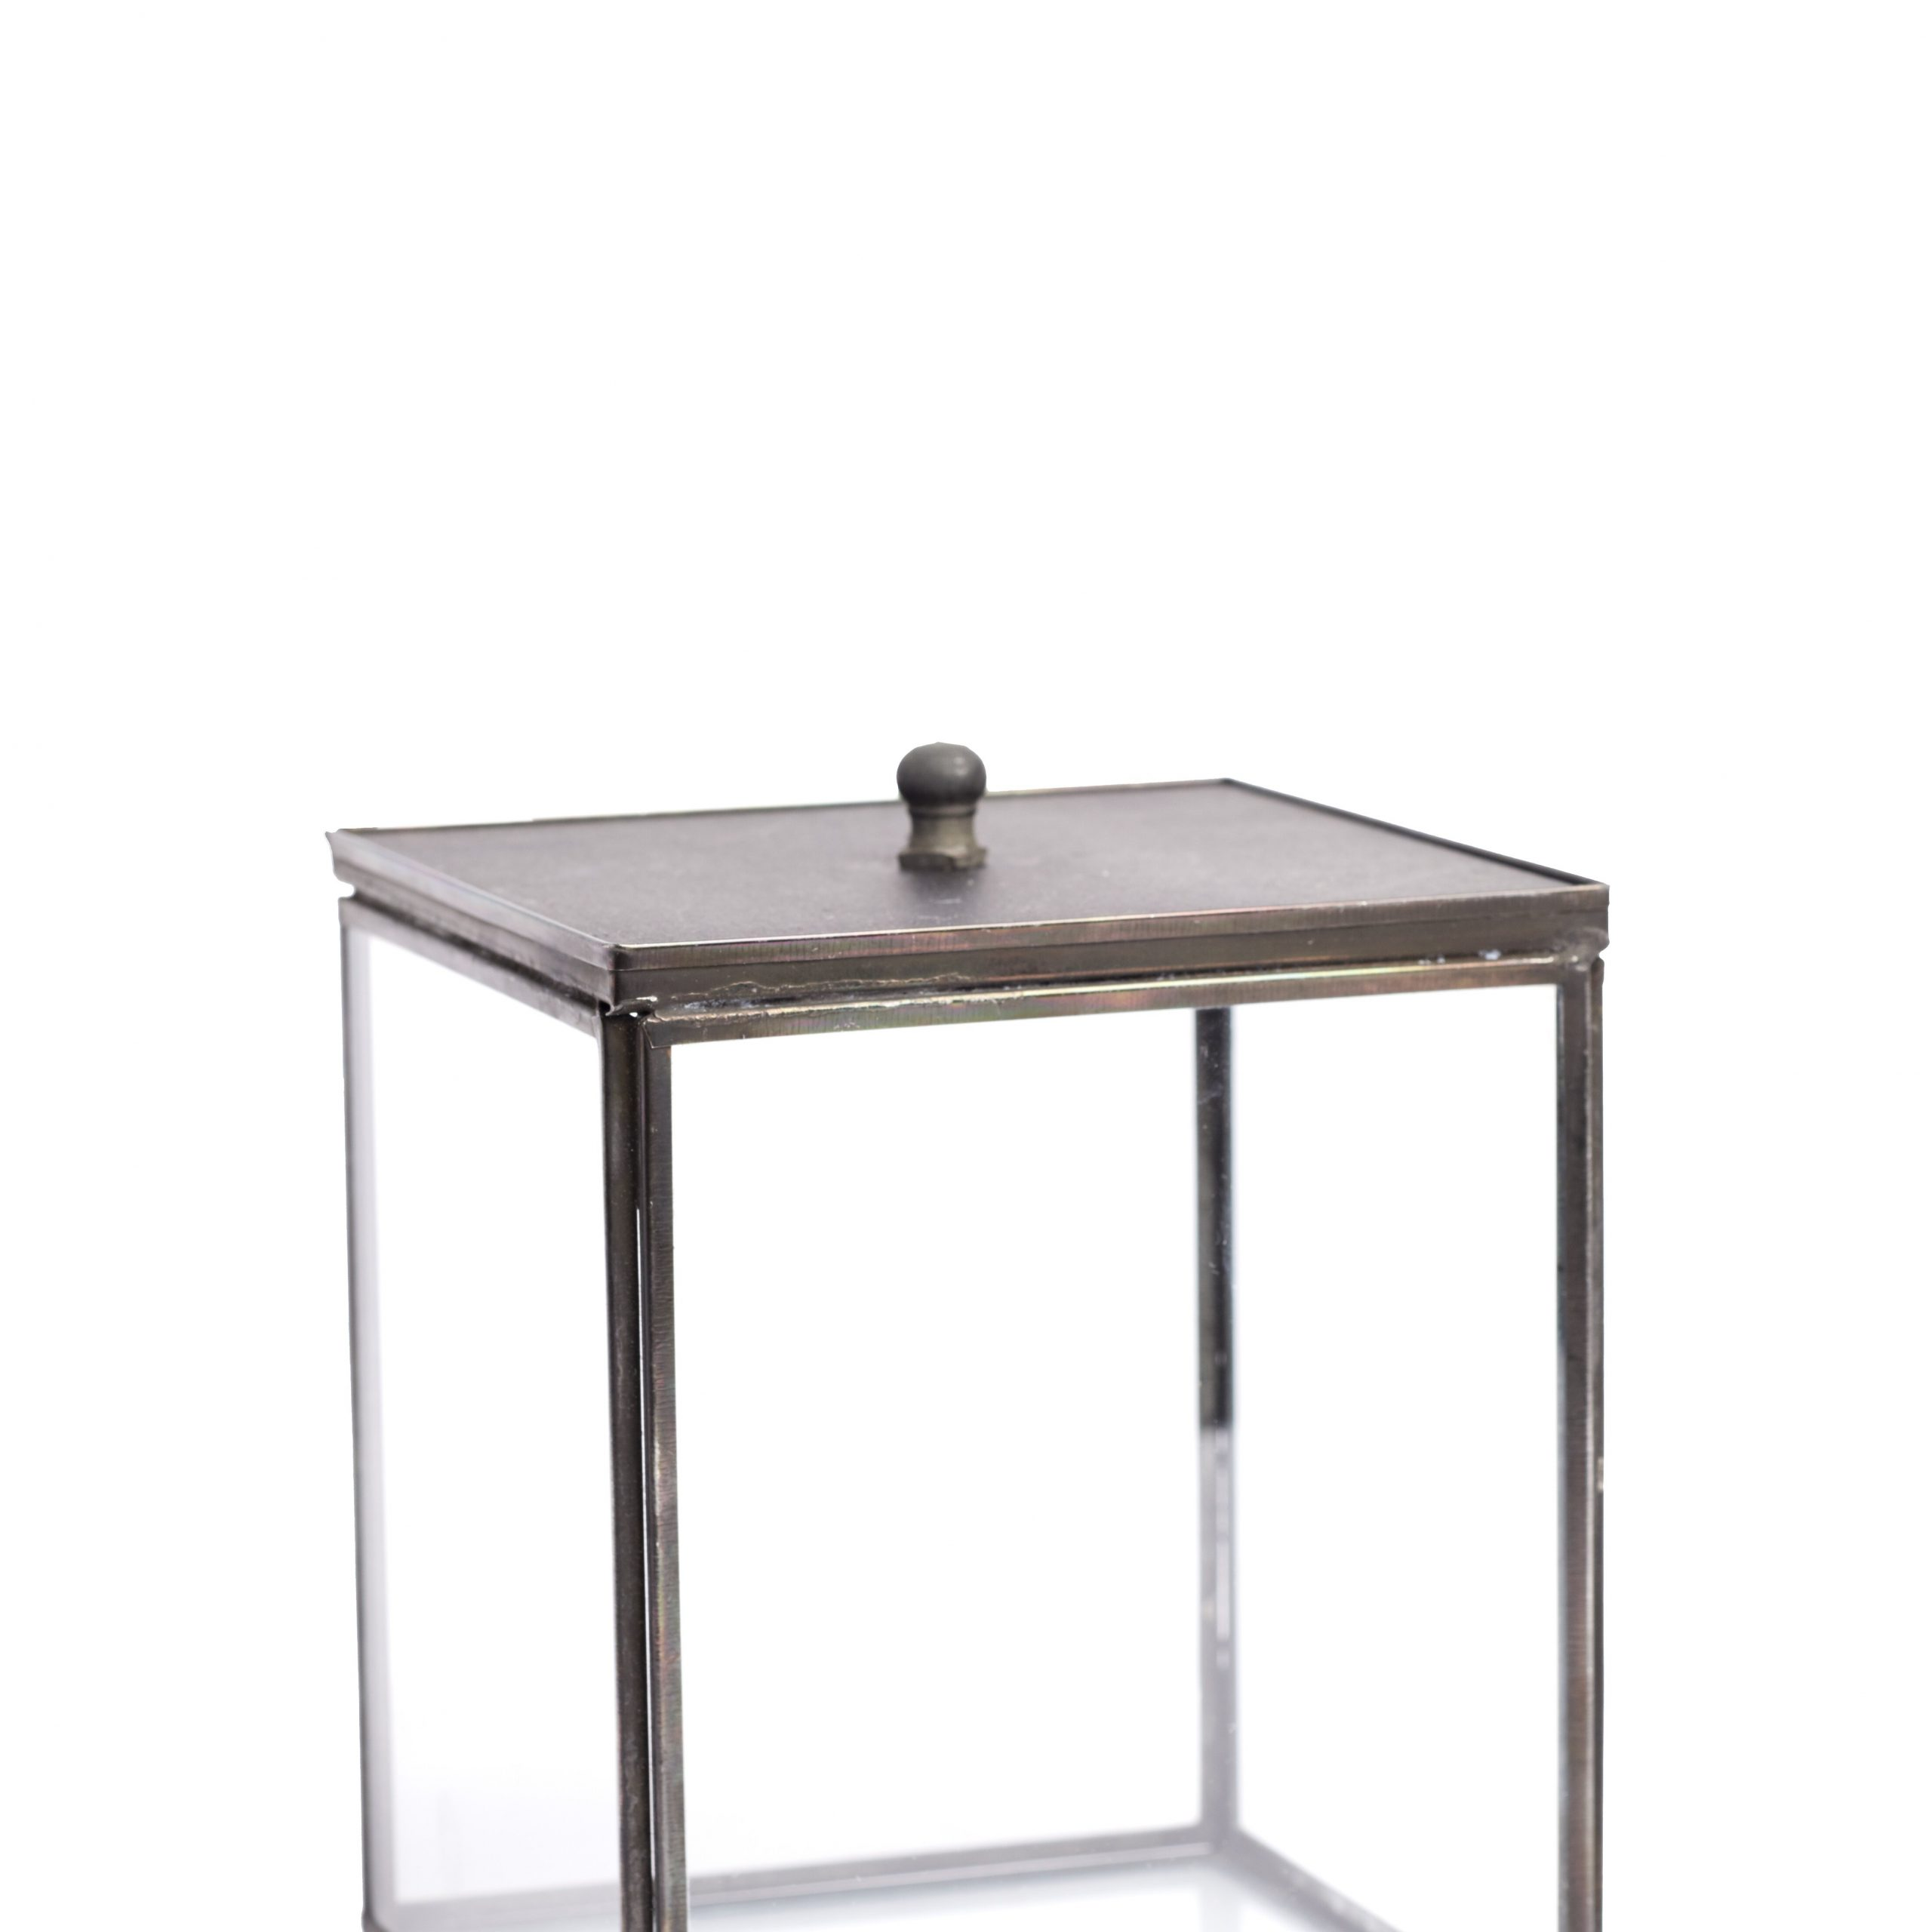 Most Popular Gaener Glass And Wood Vanity Box Pertaining To Tillia Ceramic Garden Stools (View 24 of 30)